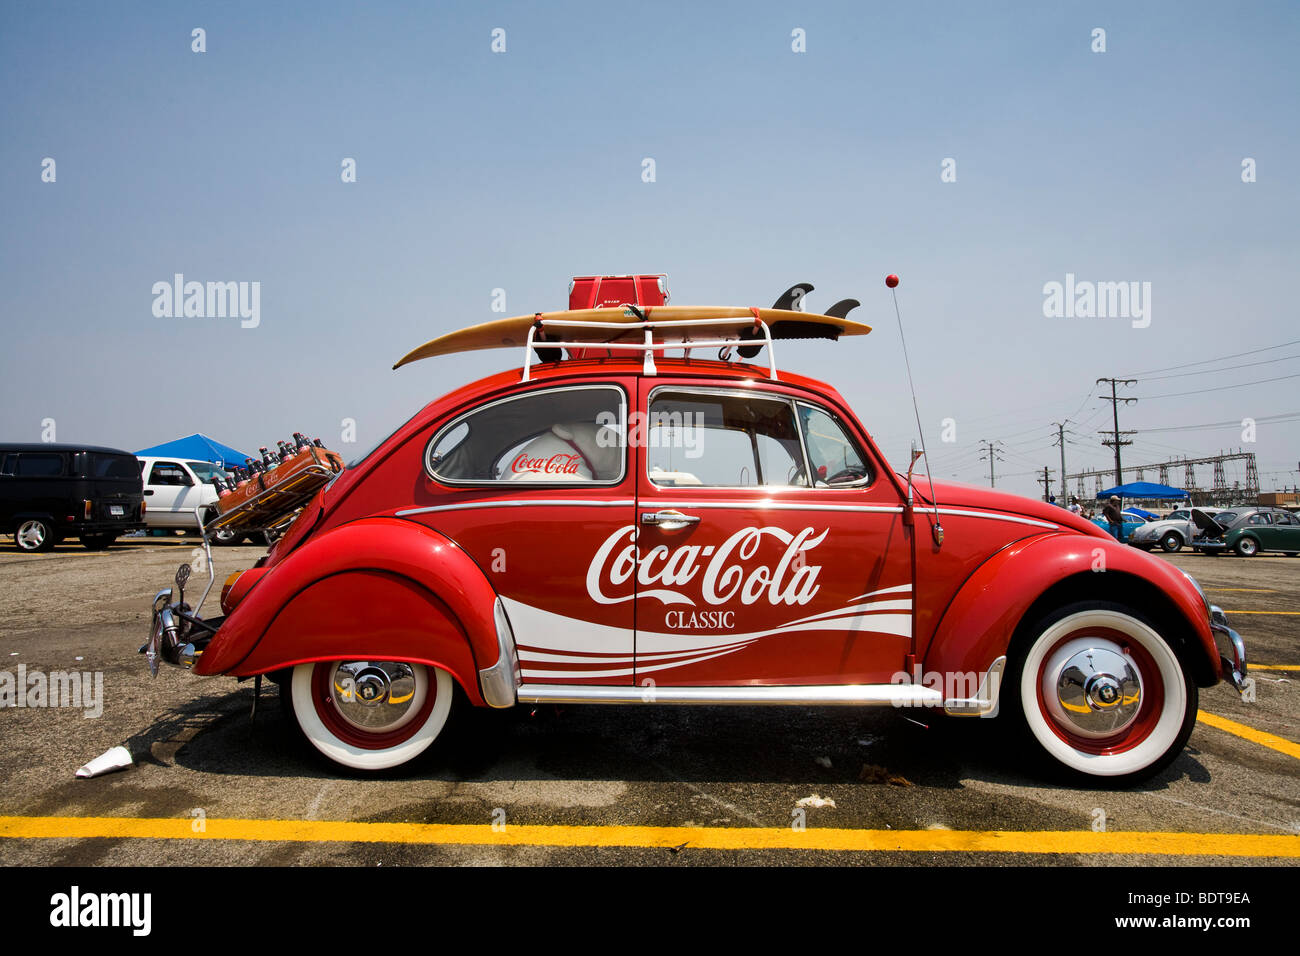 VW Beetle with Coca Cola logo, Pomona Swap Meet for the antique auto enthusiast, - Stock Image